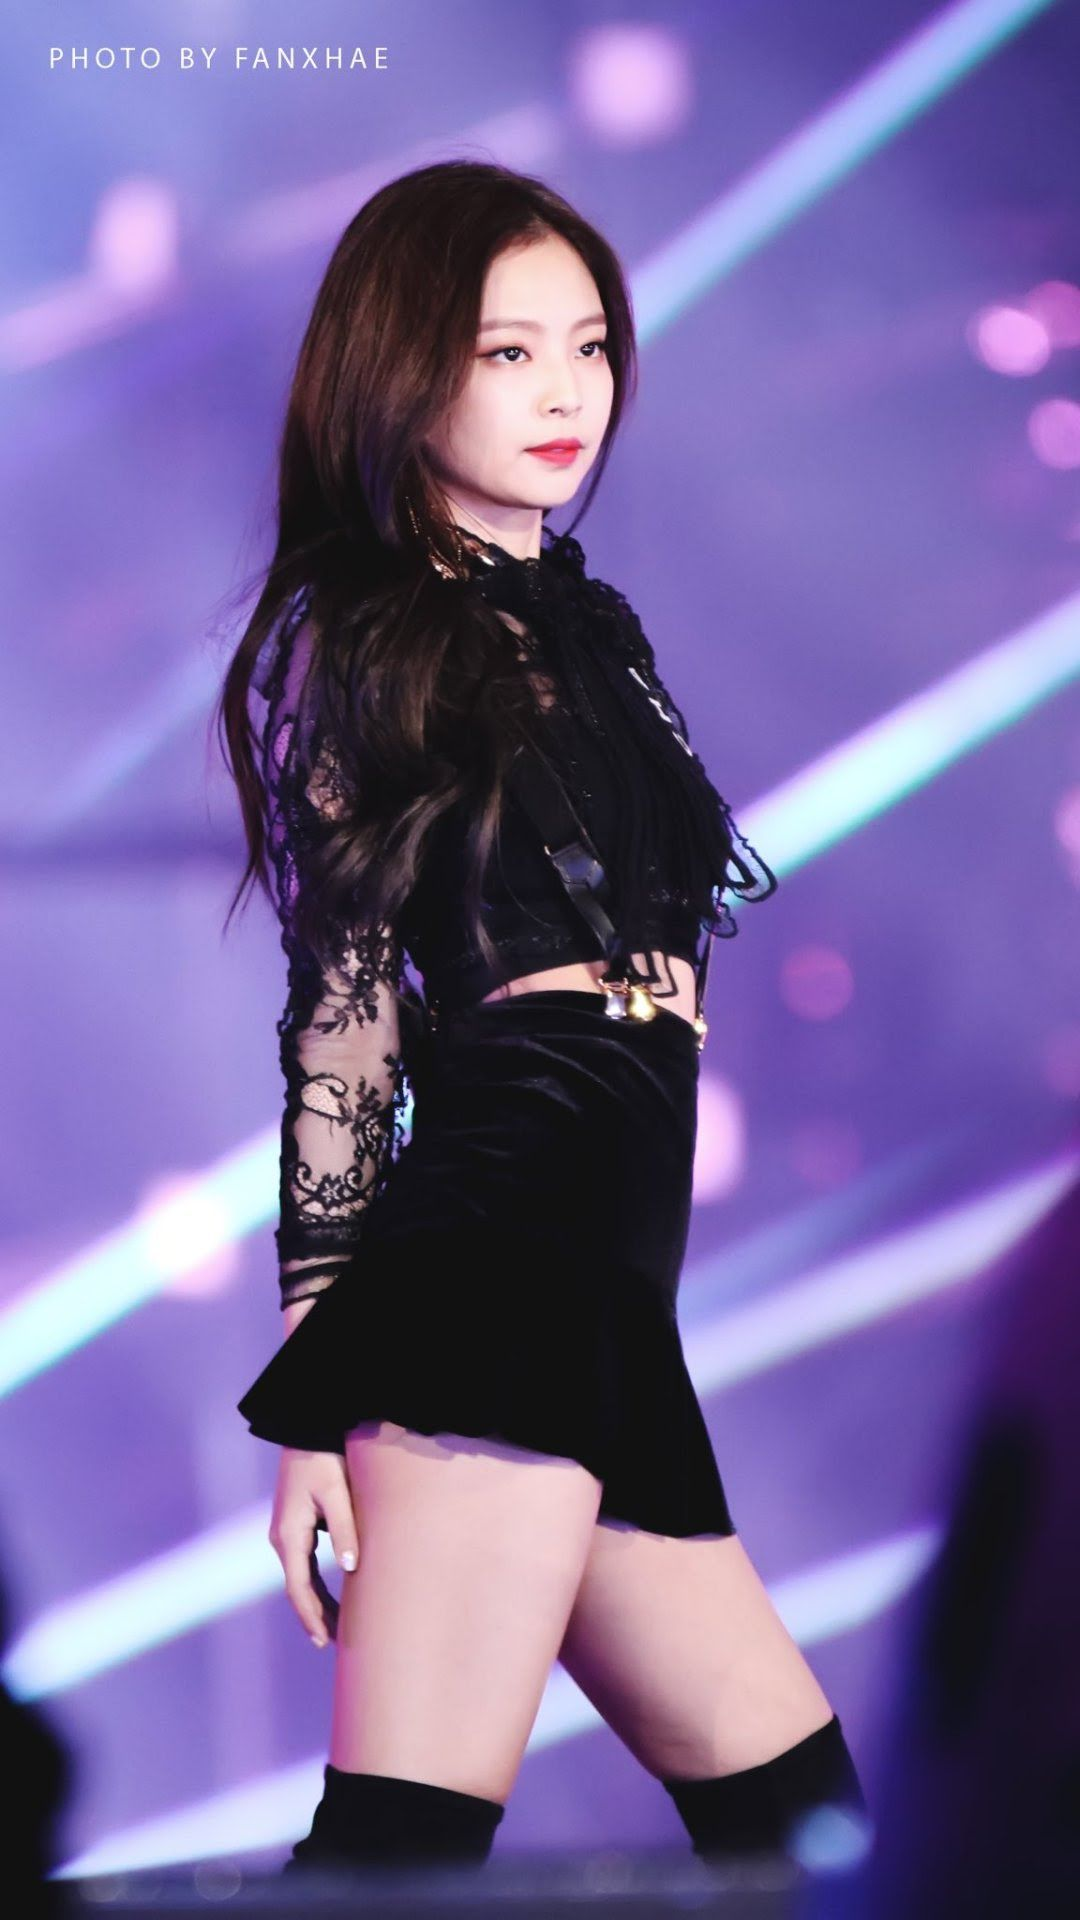 TOP 10 Sexiest Outfits Of BLACKPINK Jennie (30+ Photos)